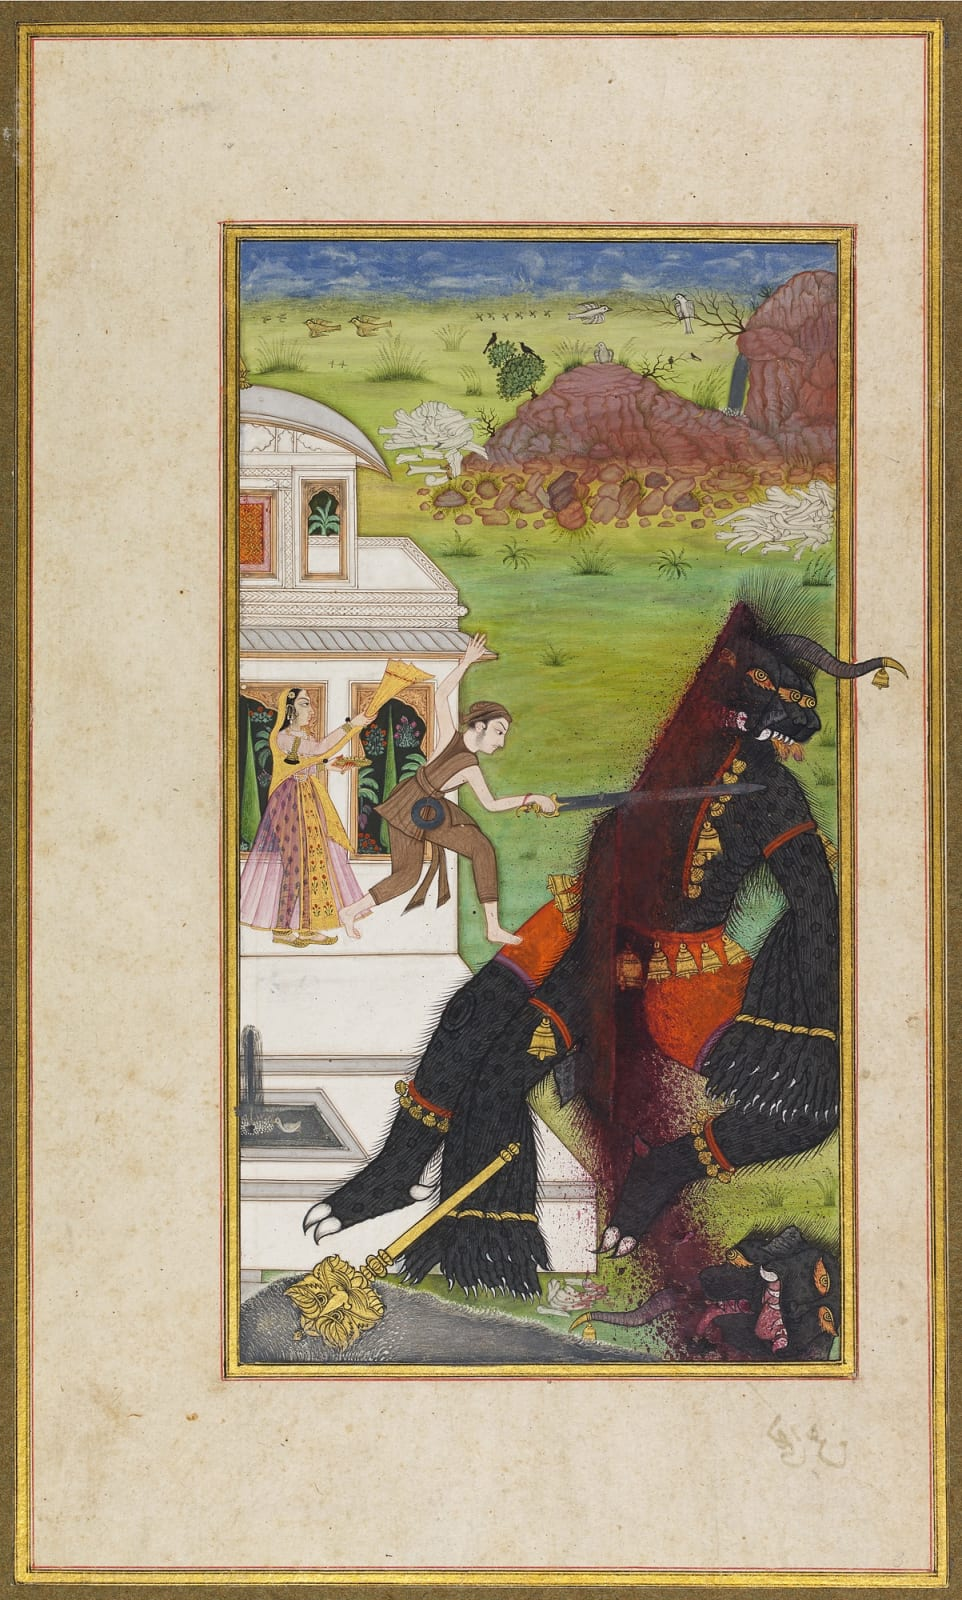 The Prince rescues the Princess from the Demon, Page from a Deccani Urdu poem, the Gulshan-i 'Ishq by Nusrati, India, Deccan, c. 1700